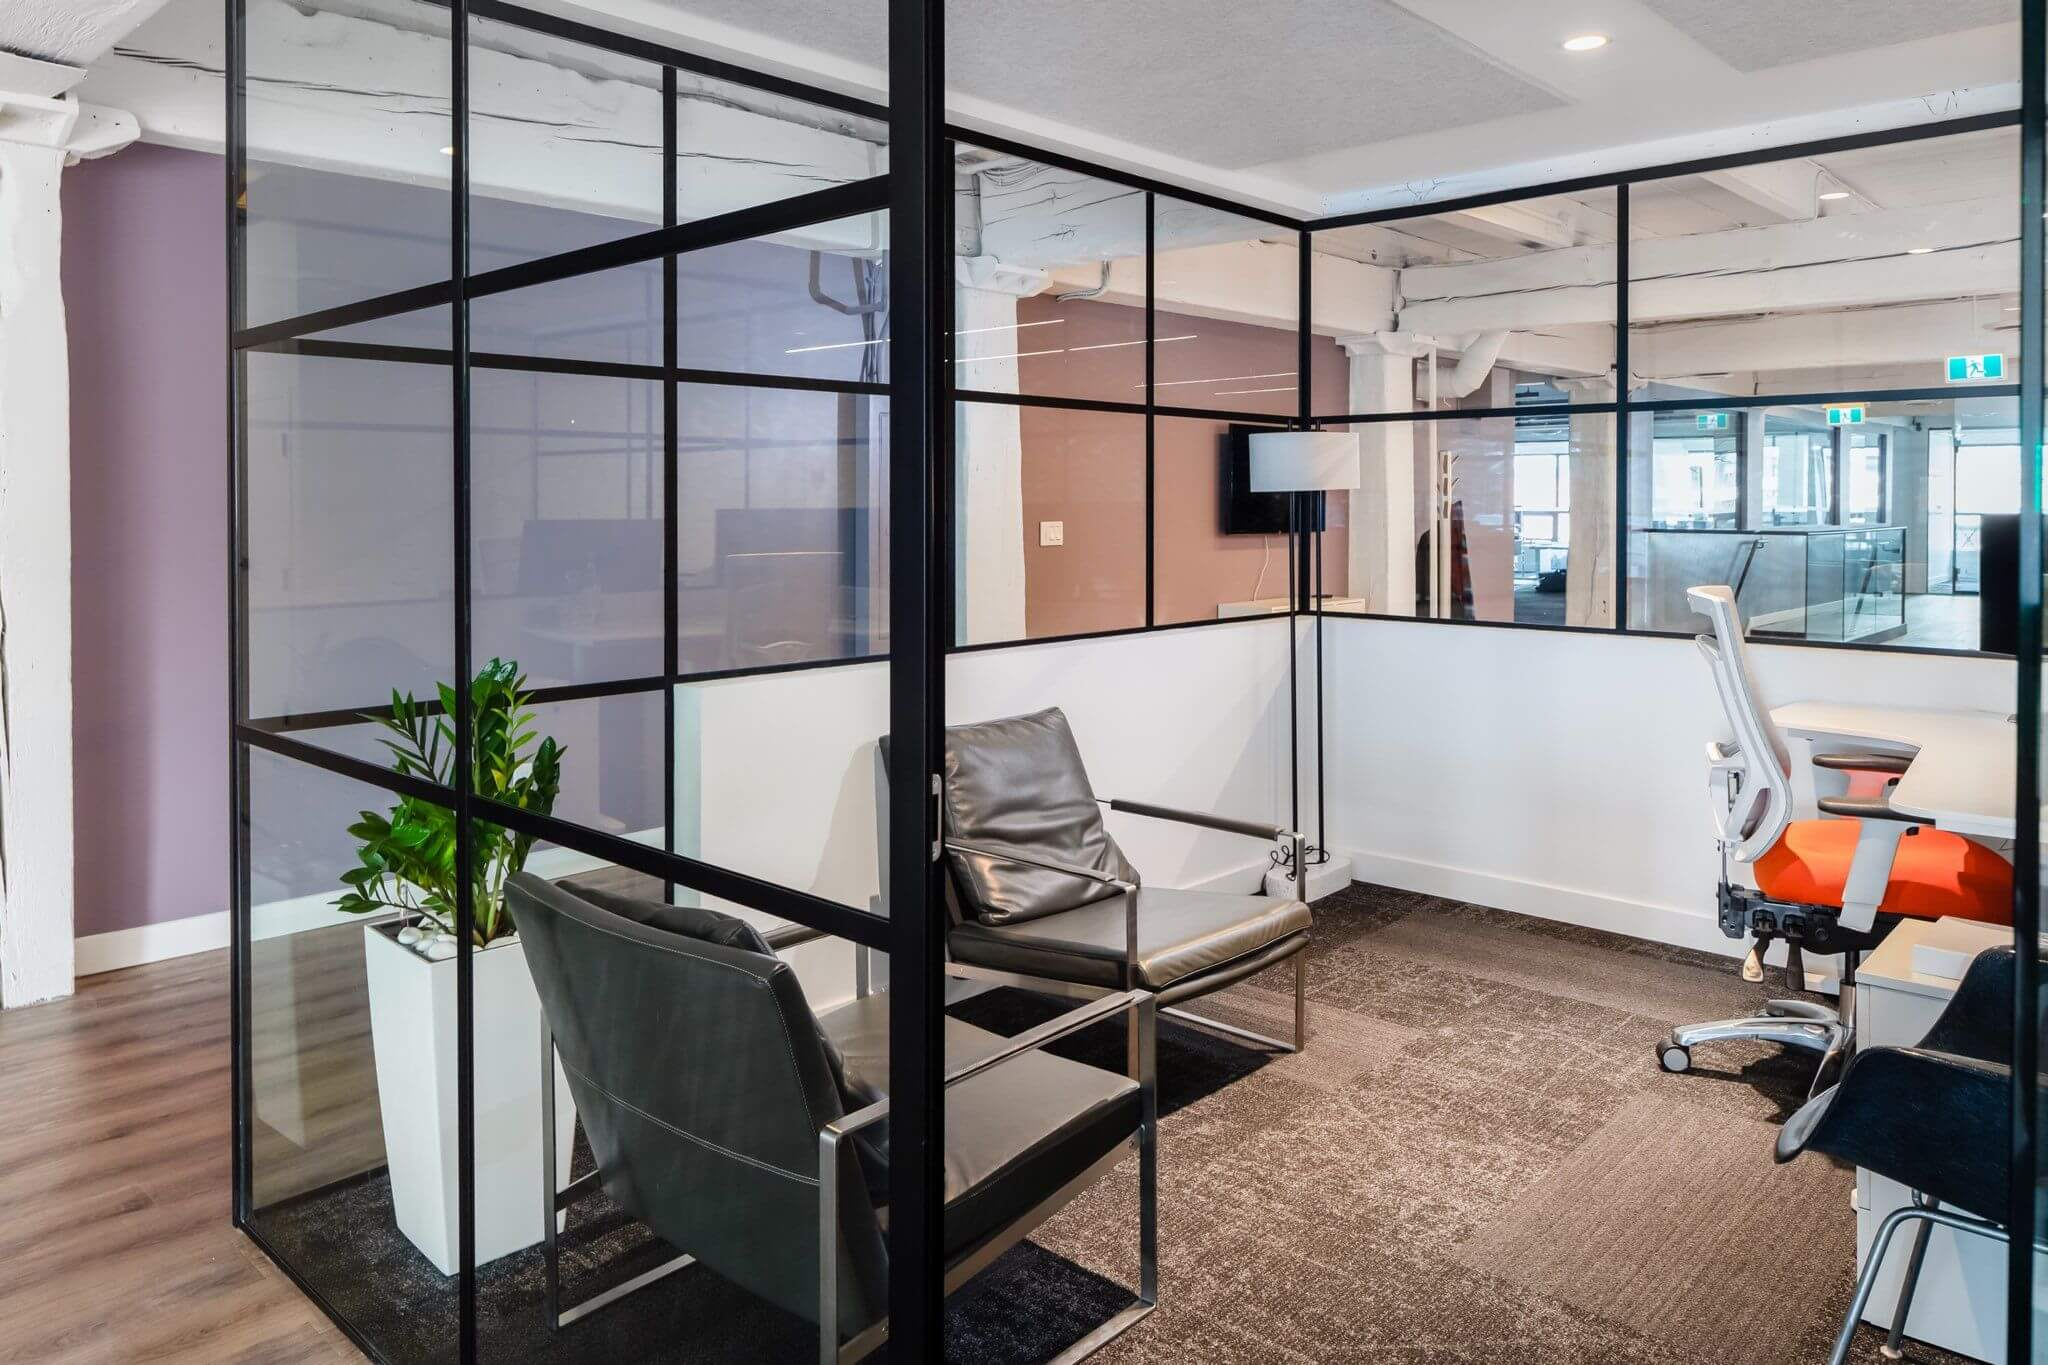 WALLENIUM_GLASS WALLS_TK_OFFICE PARTITIONS_1